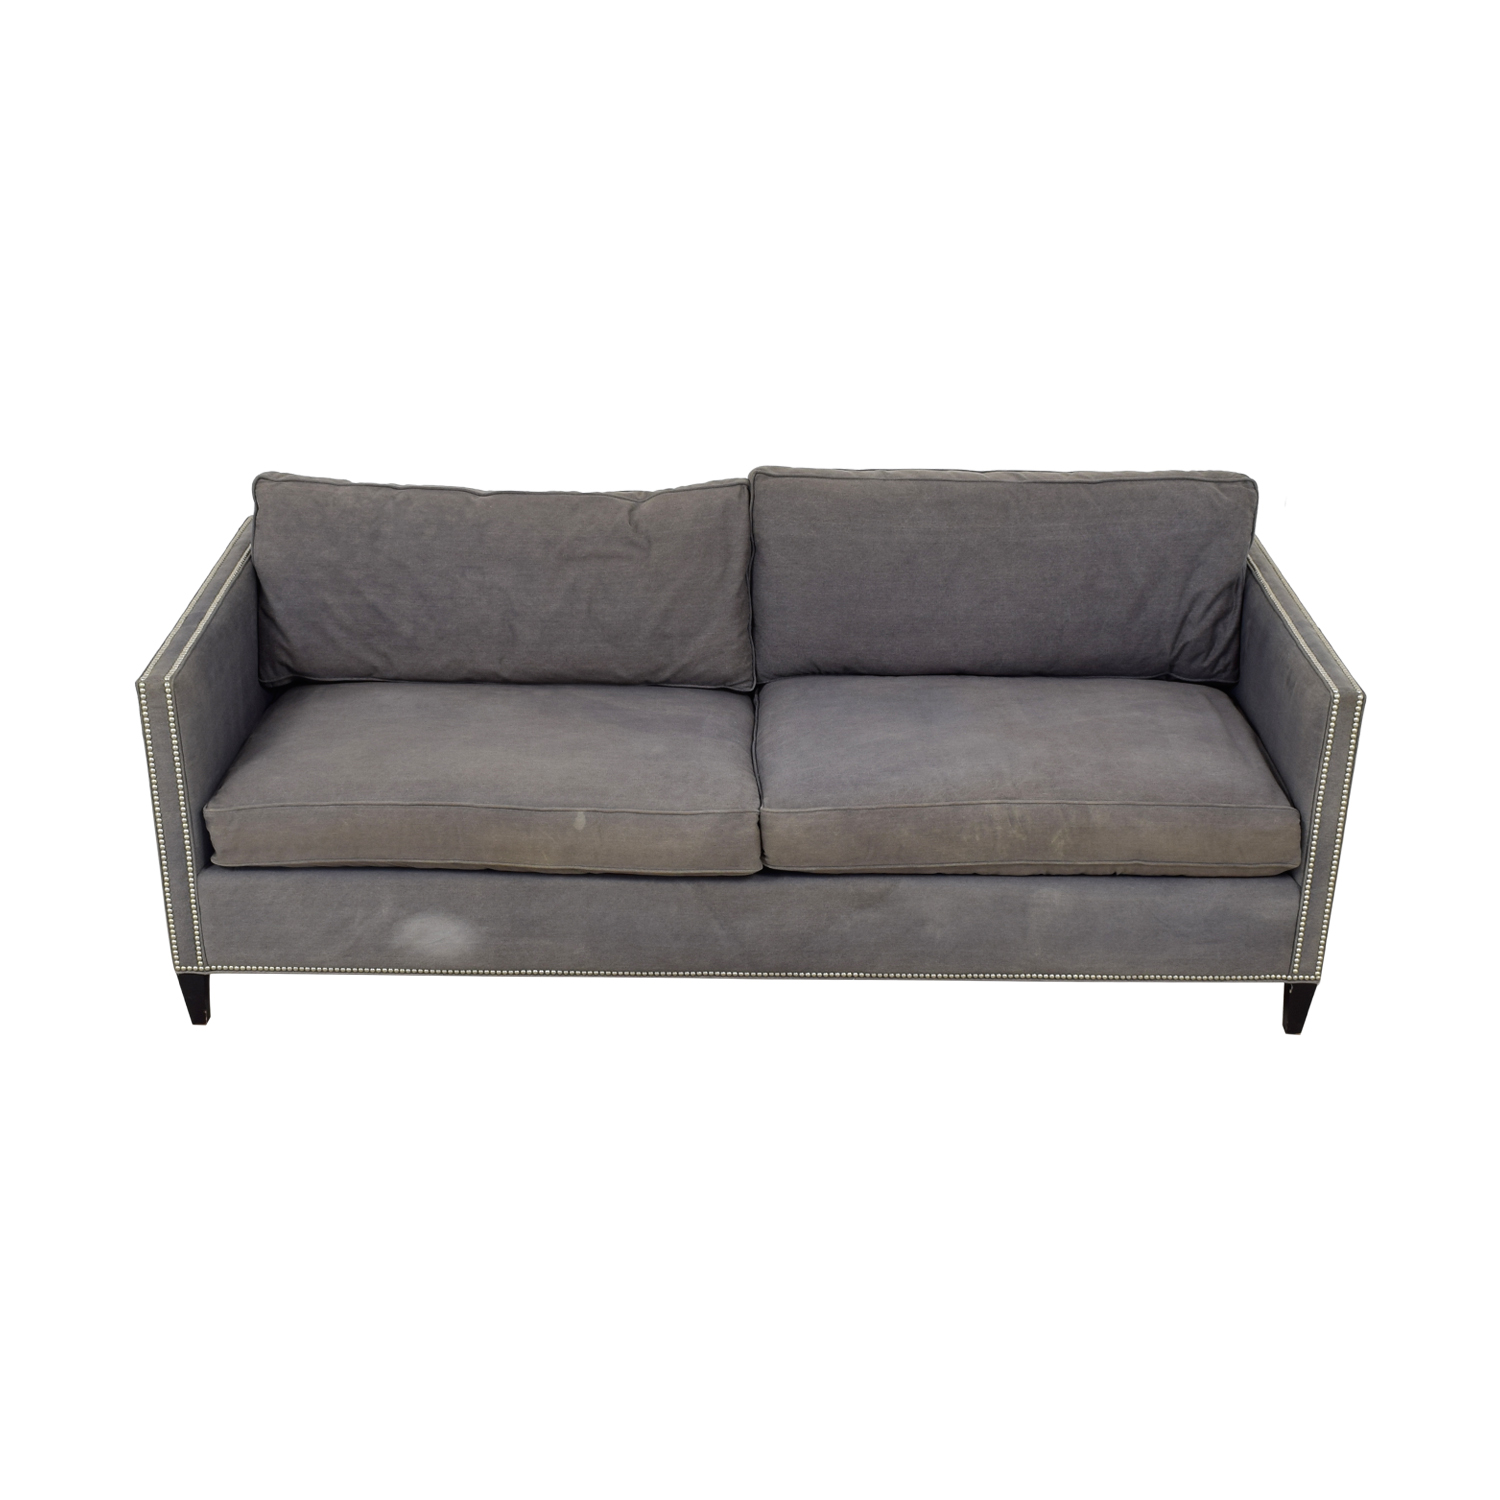 buy ABC Carpet & Home Cobble Hill Gray Nailhead Trim Sofa ABC Carpet & Home Sofas